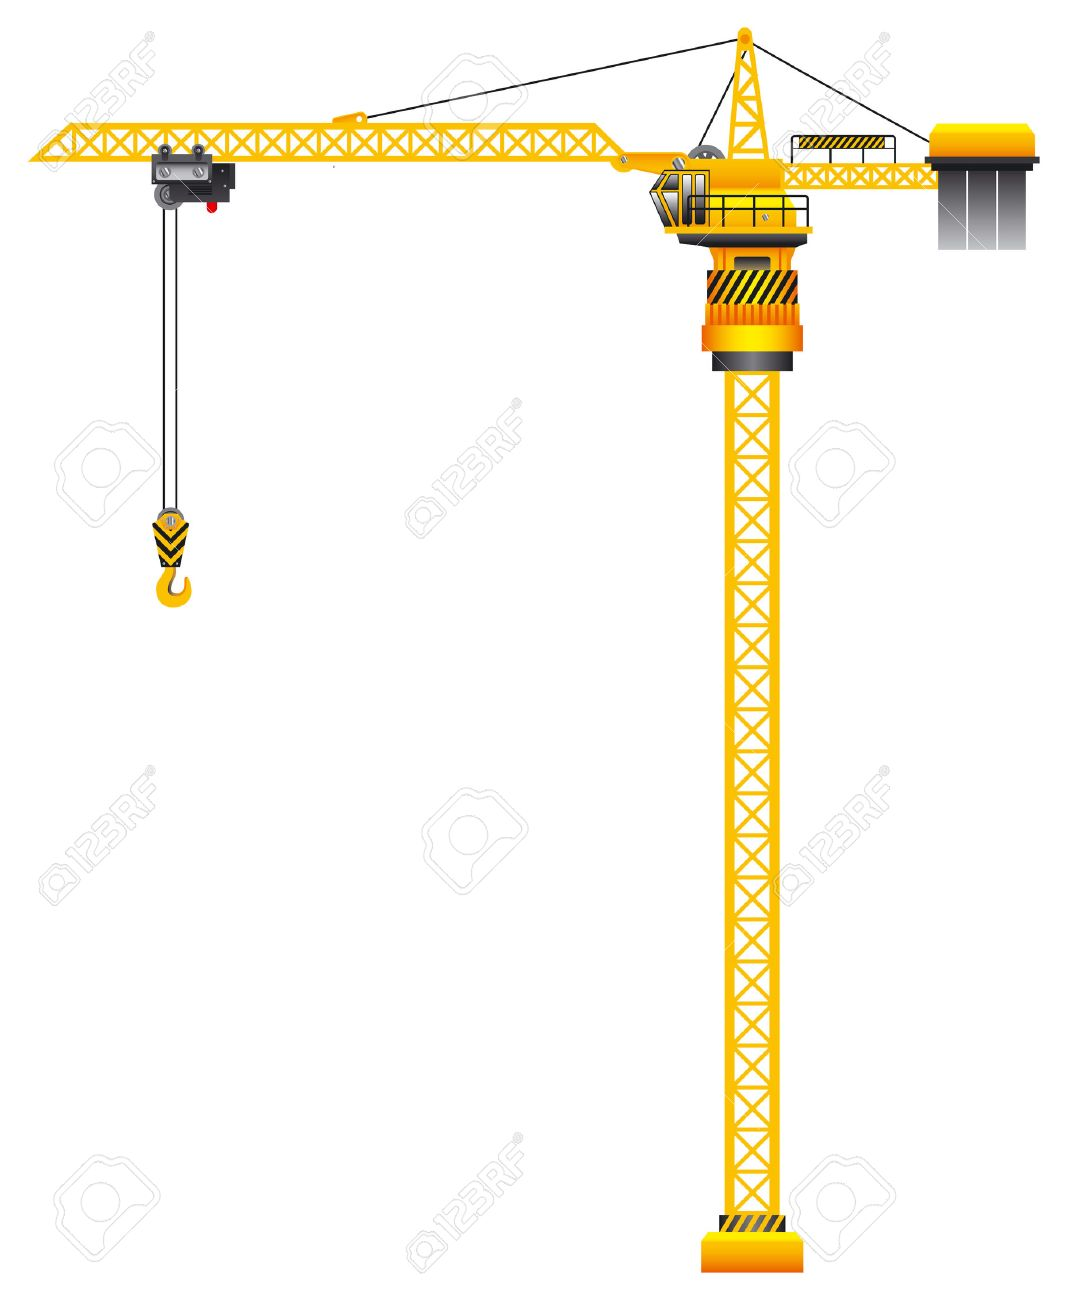 construction tower crane vector illustration royalty free cliparts